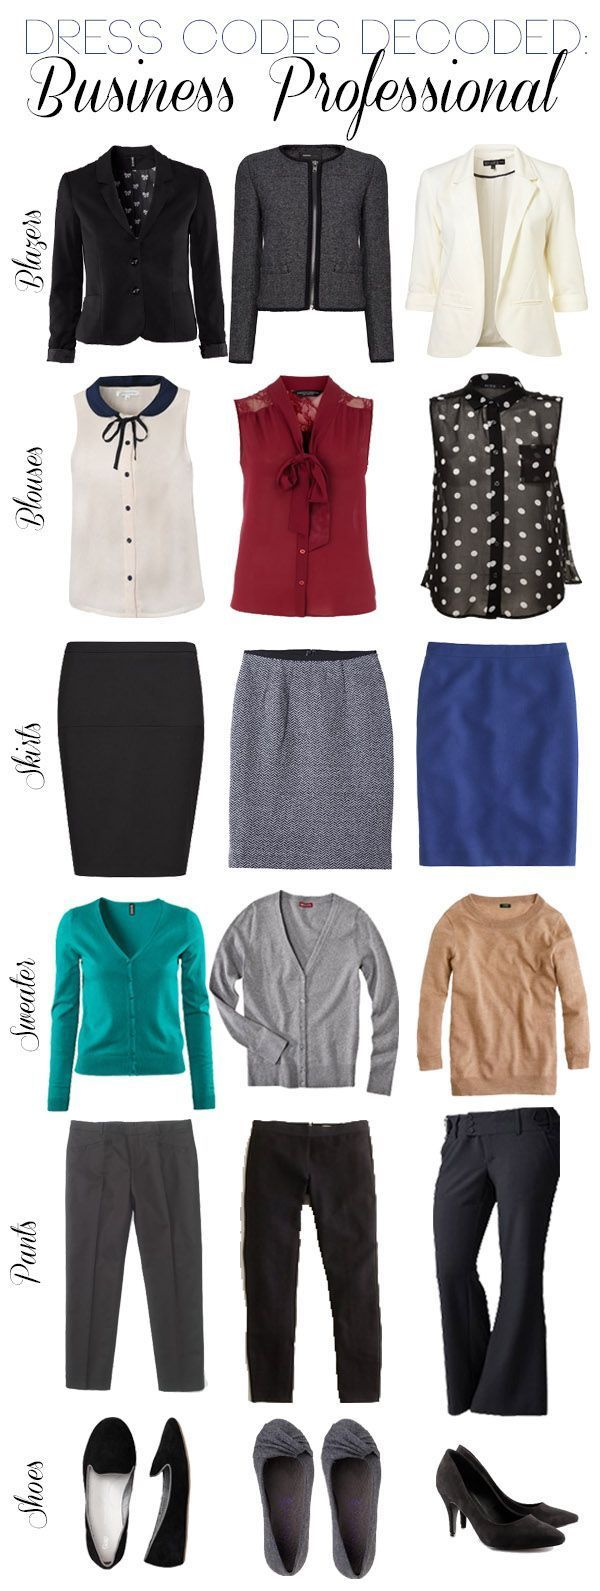 Business Professional clothing to help build a professional wardrobe.